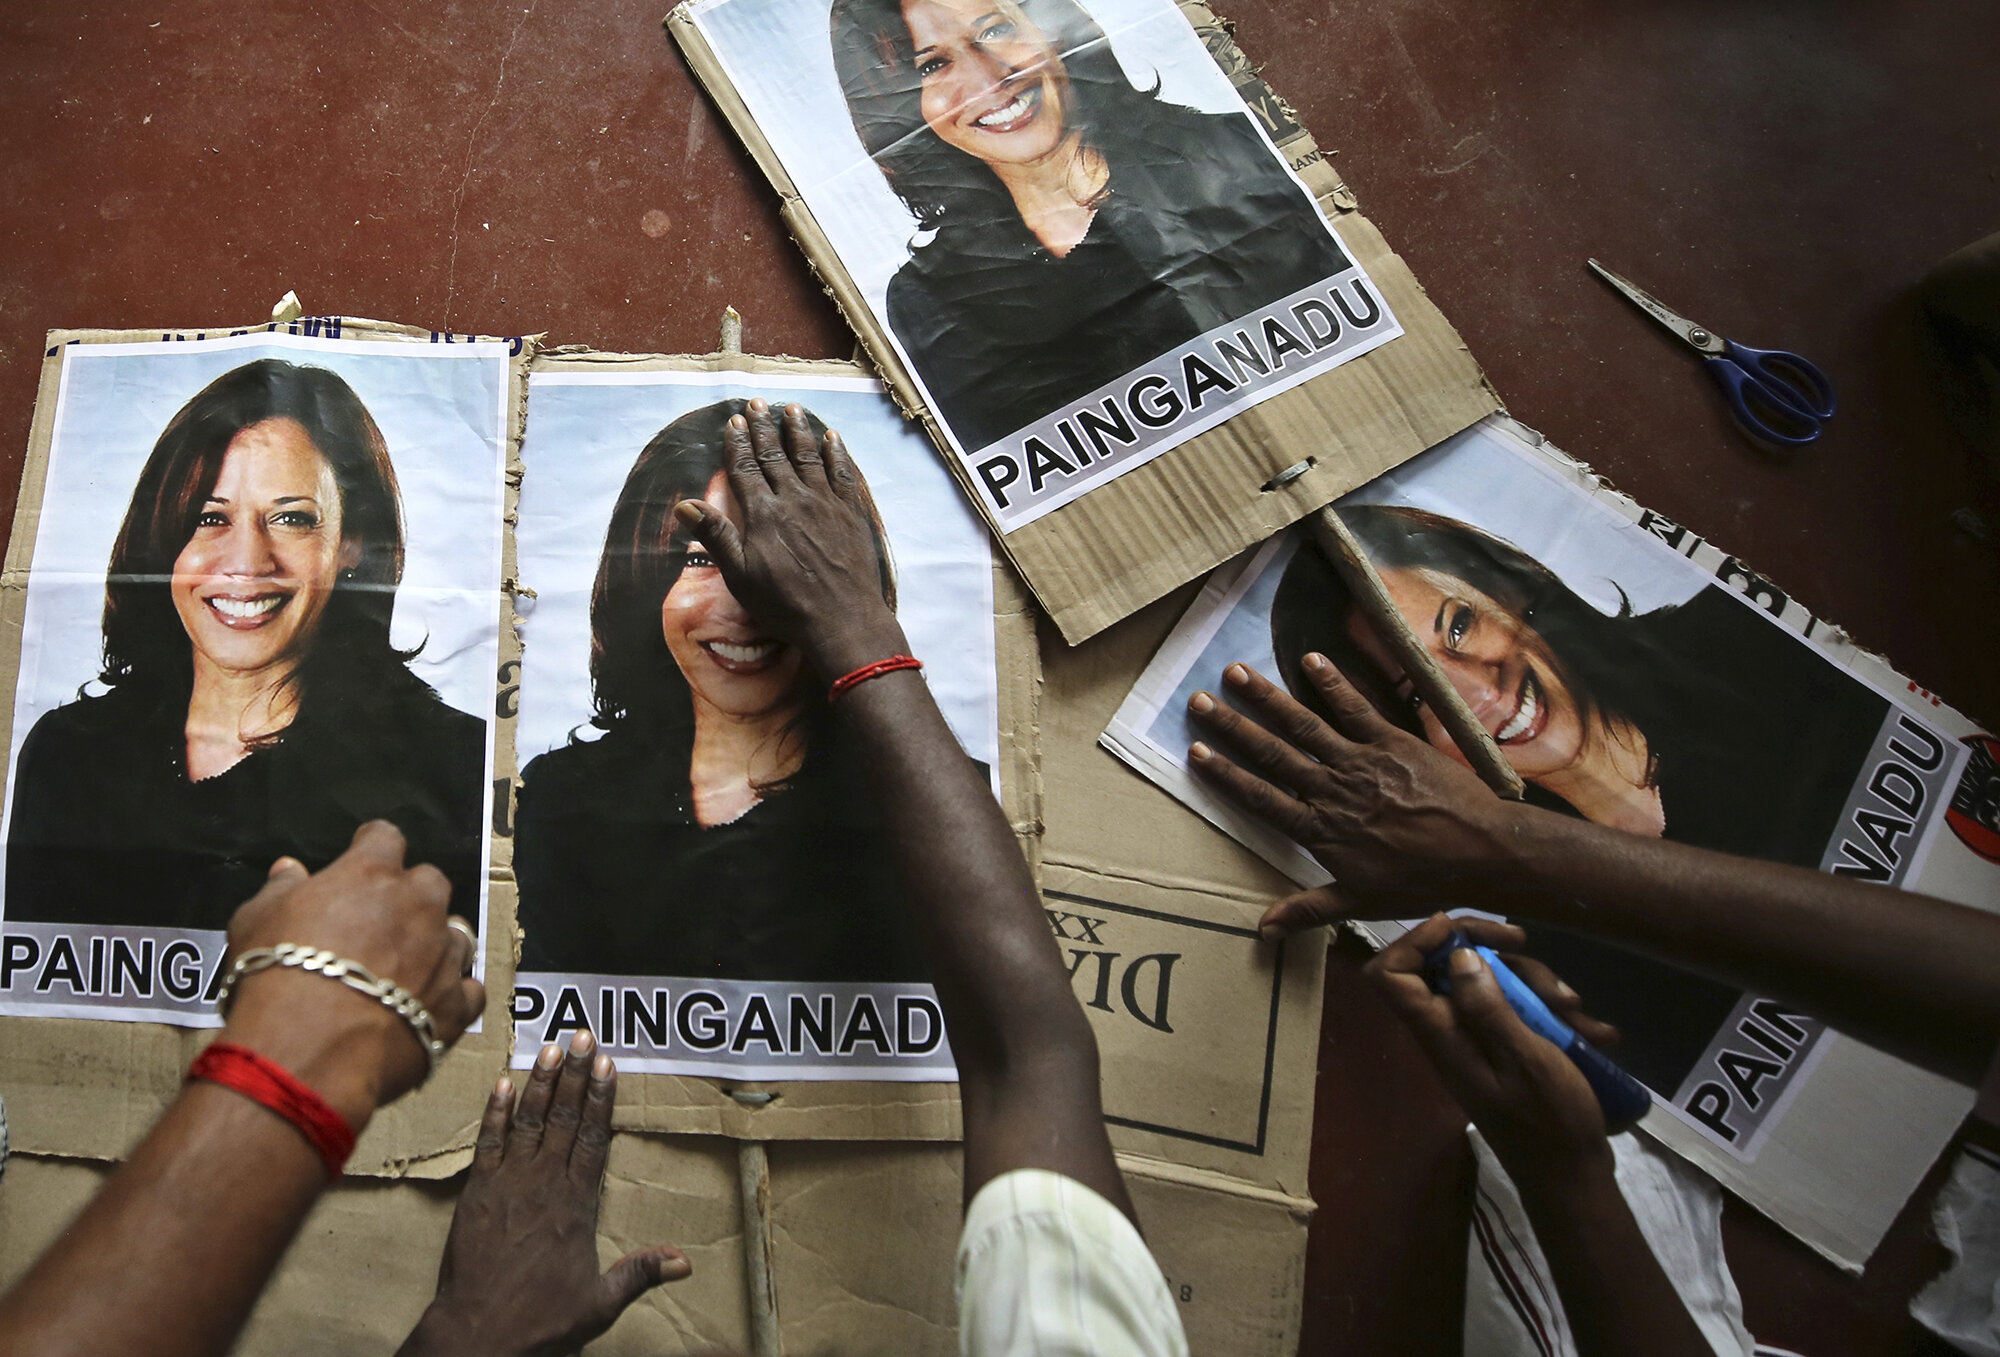 Villagers prepare placards featuring U.S. Democratic vice presidential candidate Sen. Kamala Harris in Painganadu, a neighboring village of Thulasendrapuram, south of Chennai, in Tamil Nadu state, India, Nov. 6, 2020. The lush green village of Thulasendrapuram is the hometown of Harris' maternal grandfather, who migrated from here decades ago. (AP Photo/Aijaz Rahi)